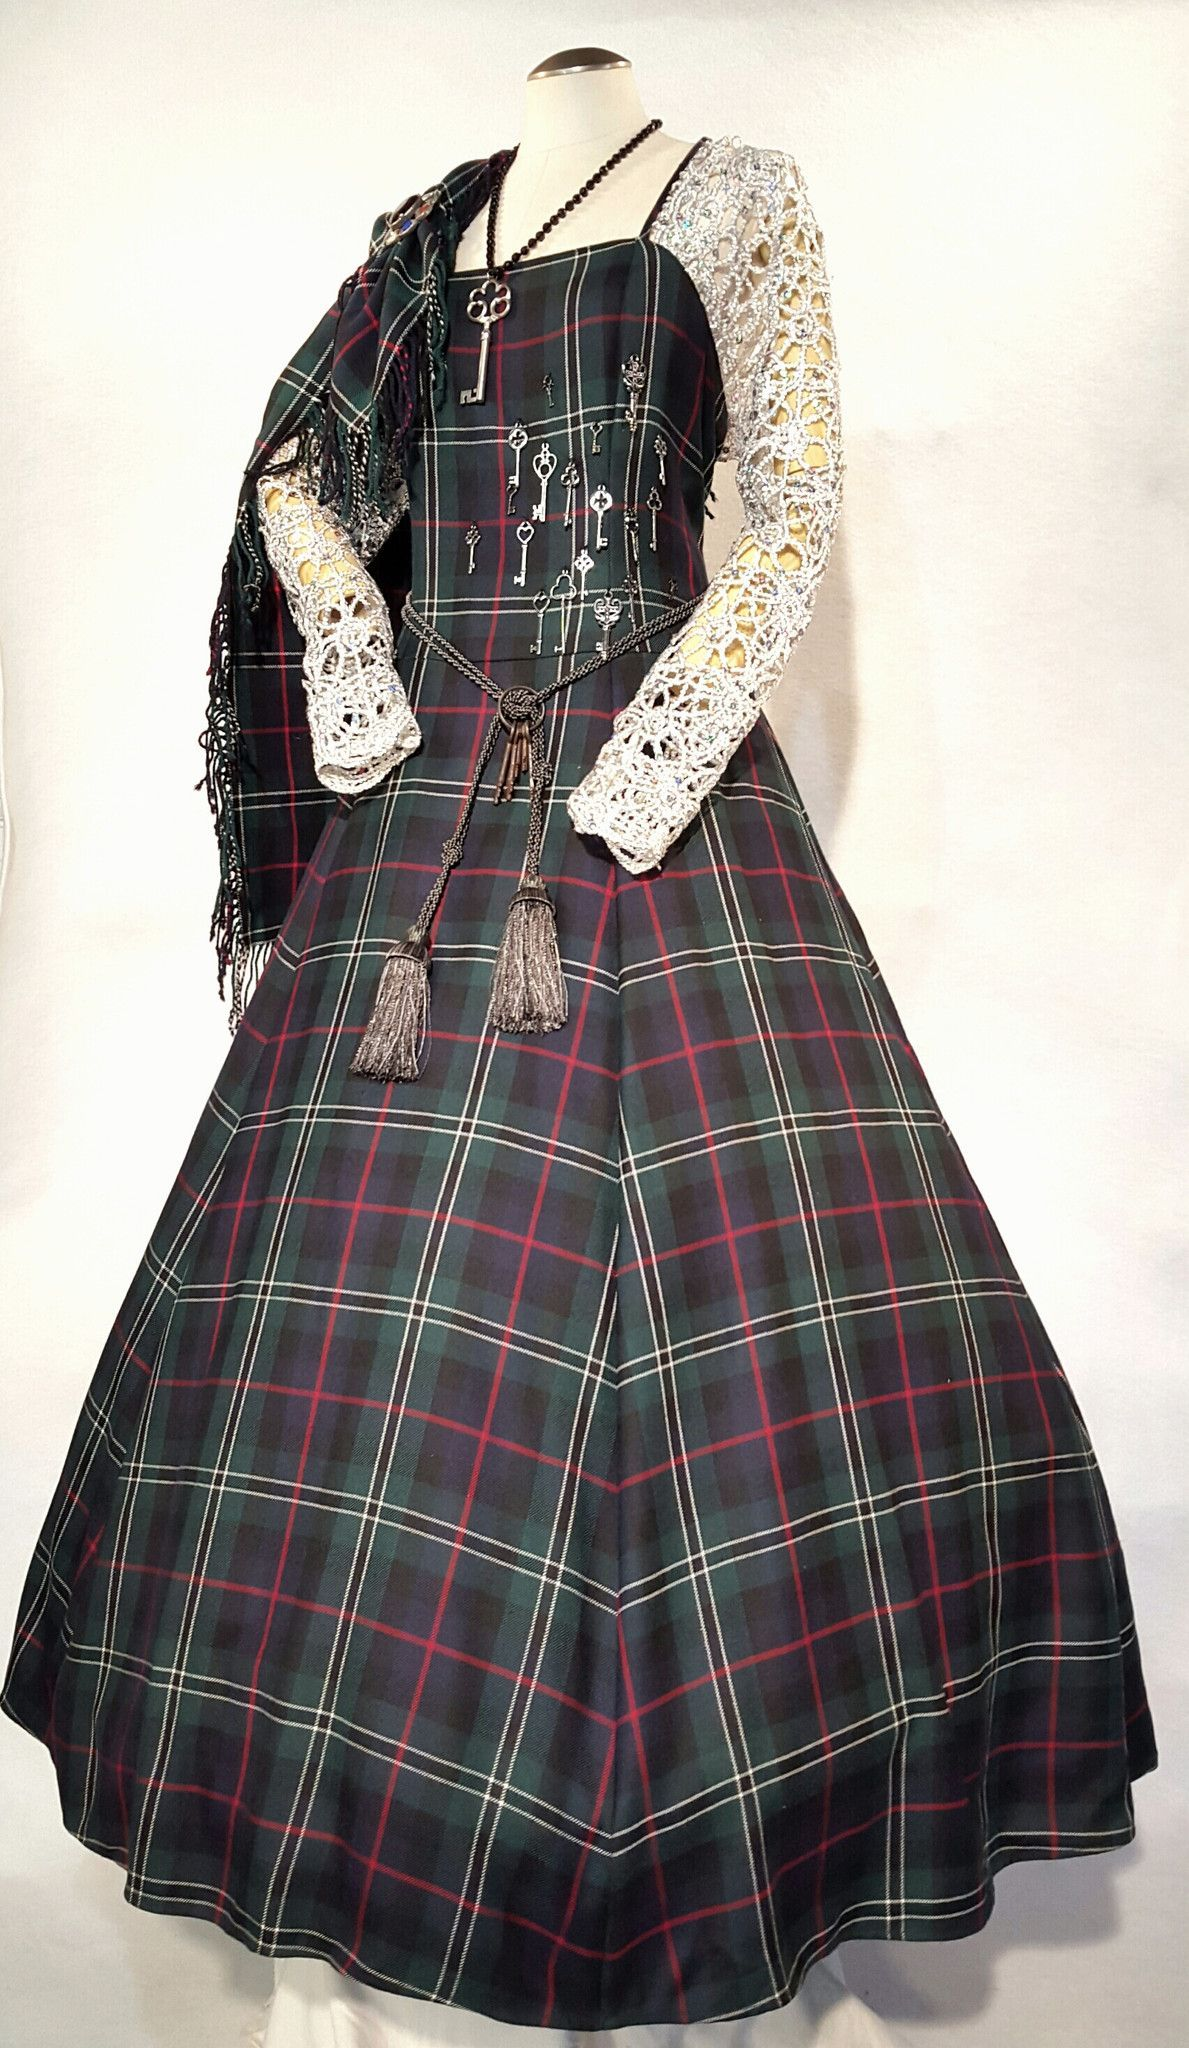 Key, Tartan (Plaid) Ball Gown | everything plaid | Pinterest ...